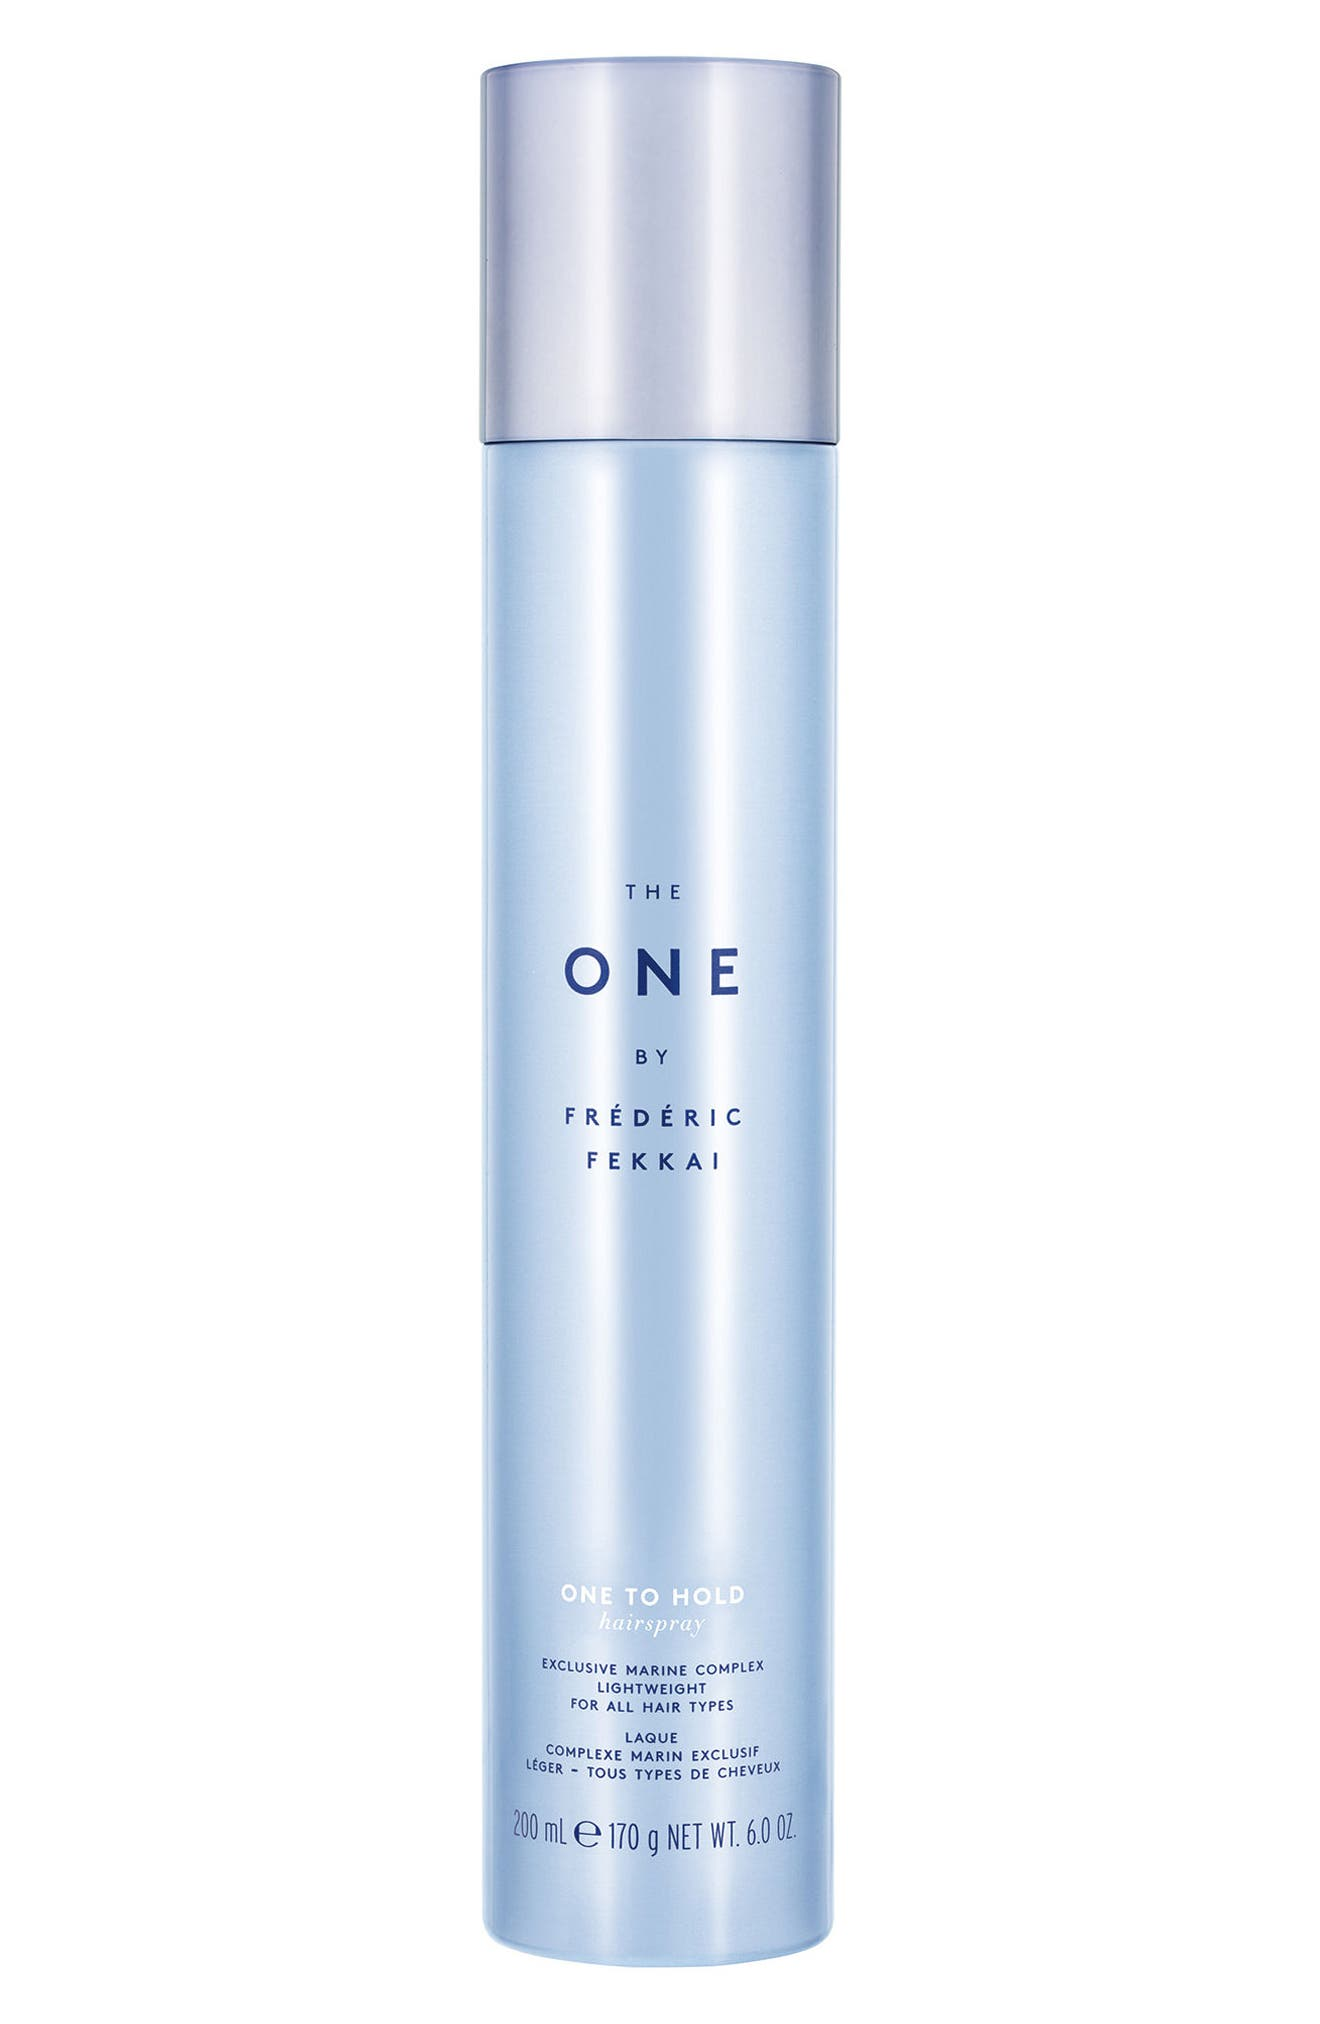 The One by Frédéric Fekkai One to Hold Hairspray,                             Main thumbnail 1, color,                             NO COLOR